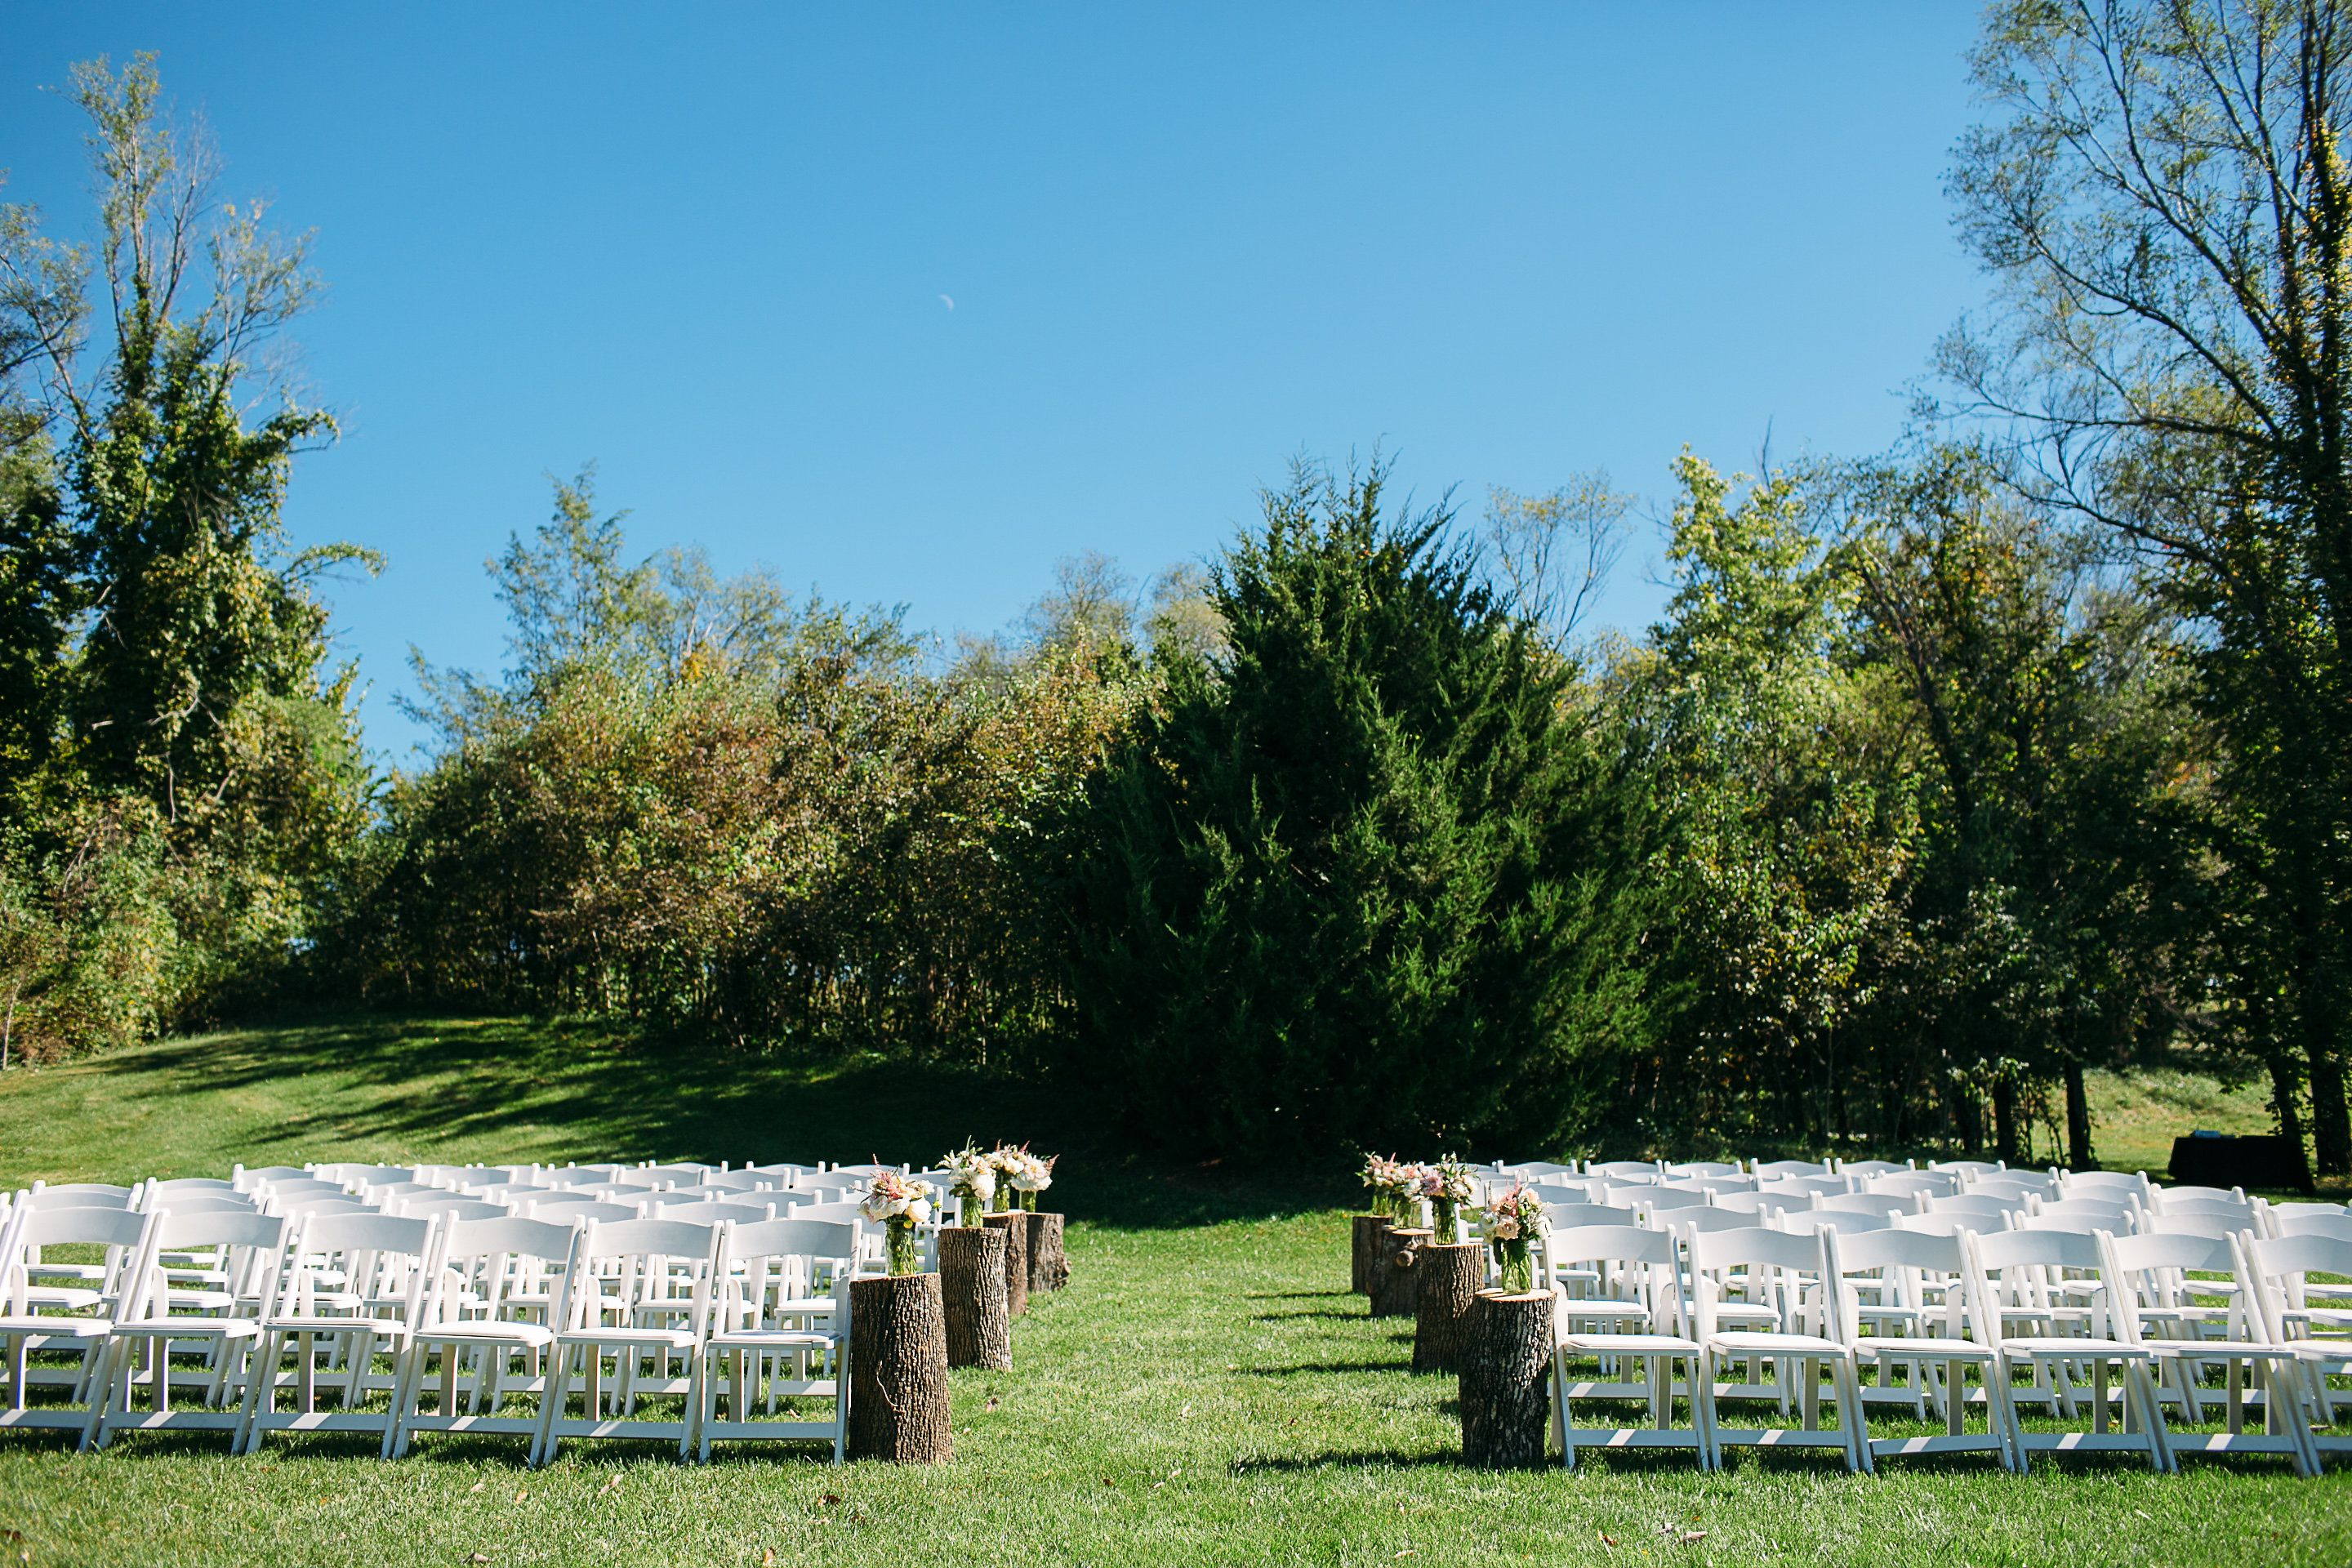 Here is the view that the bride and groom get, so